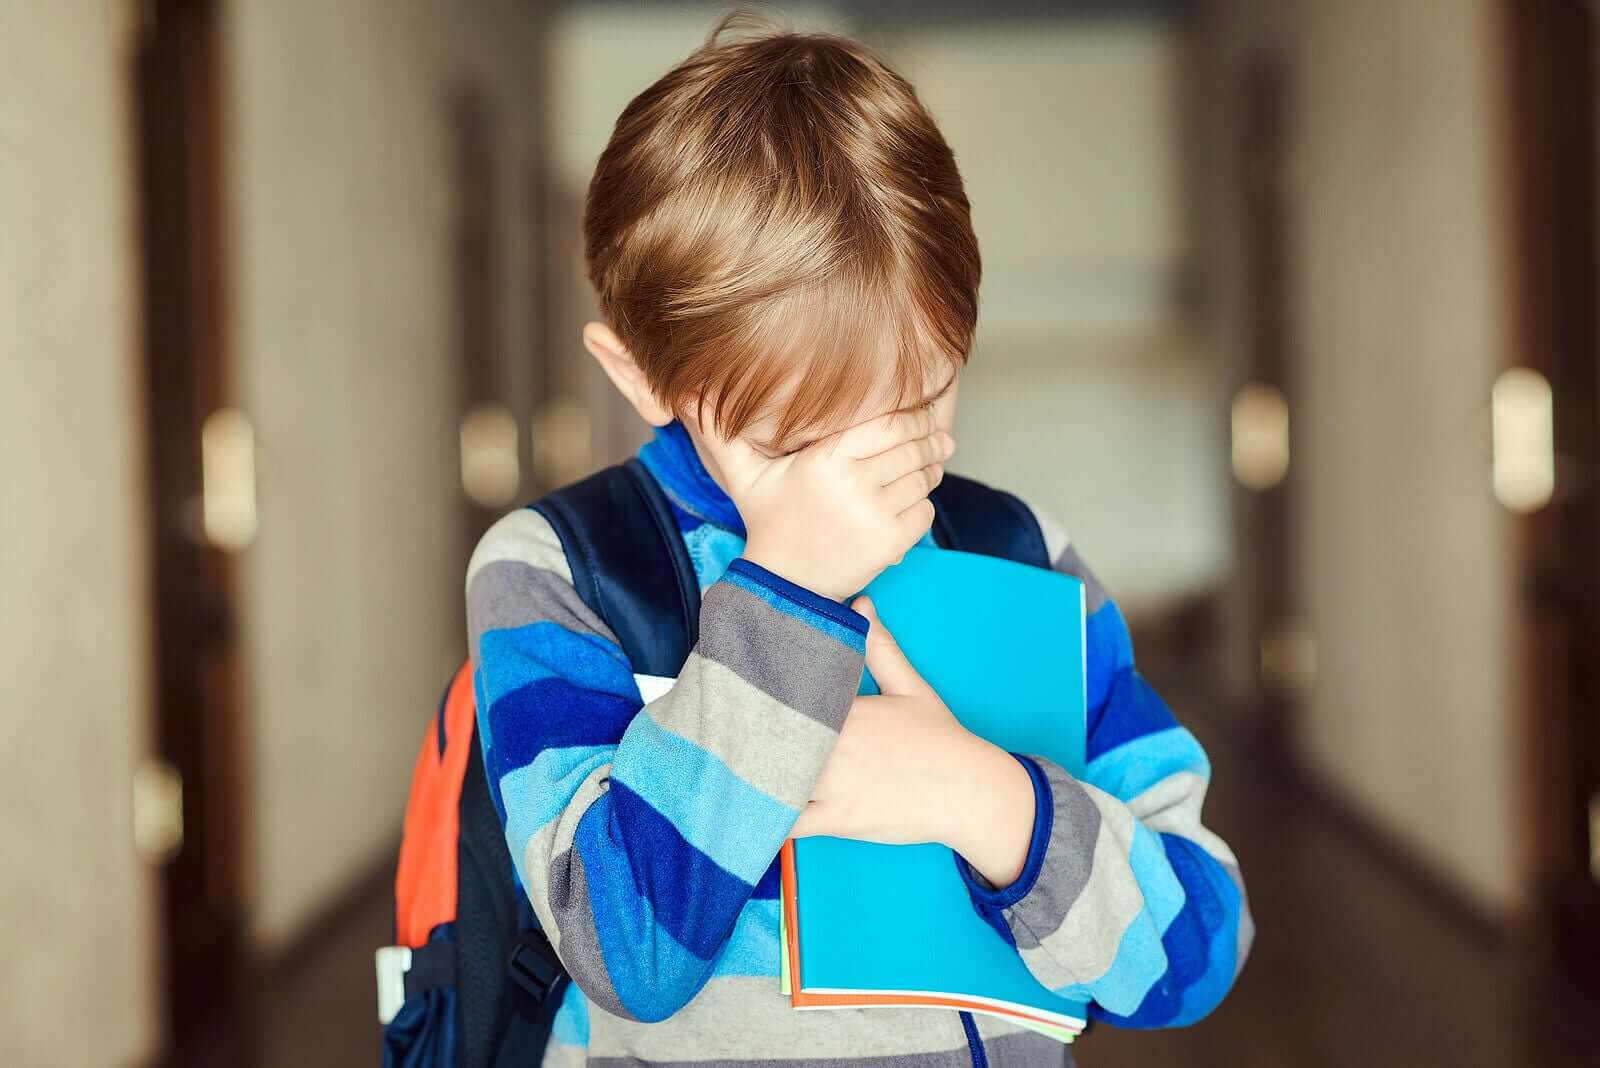 6 Tips to Help Children Deal with Rejection